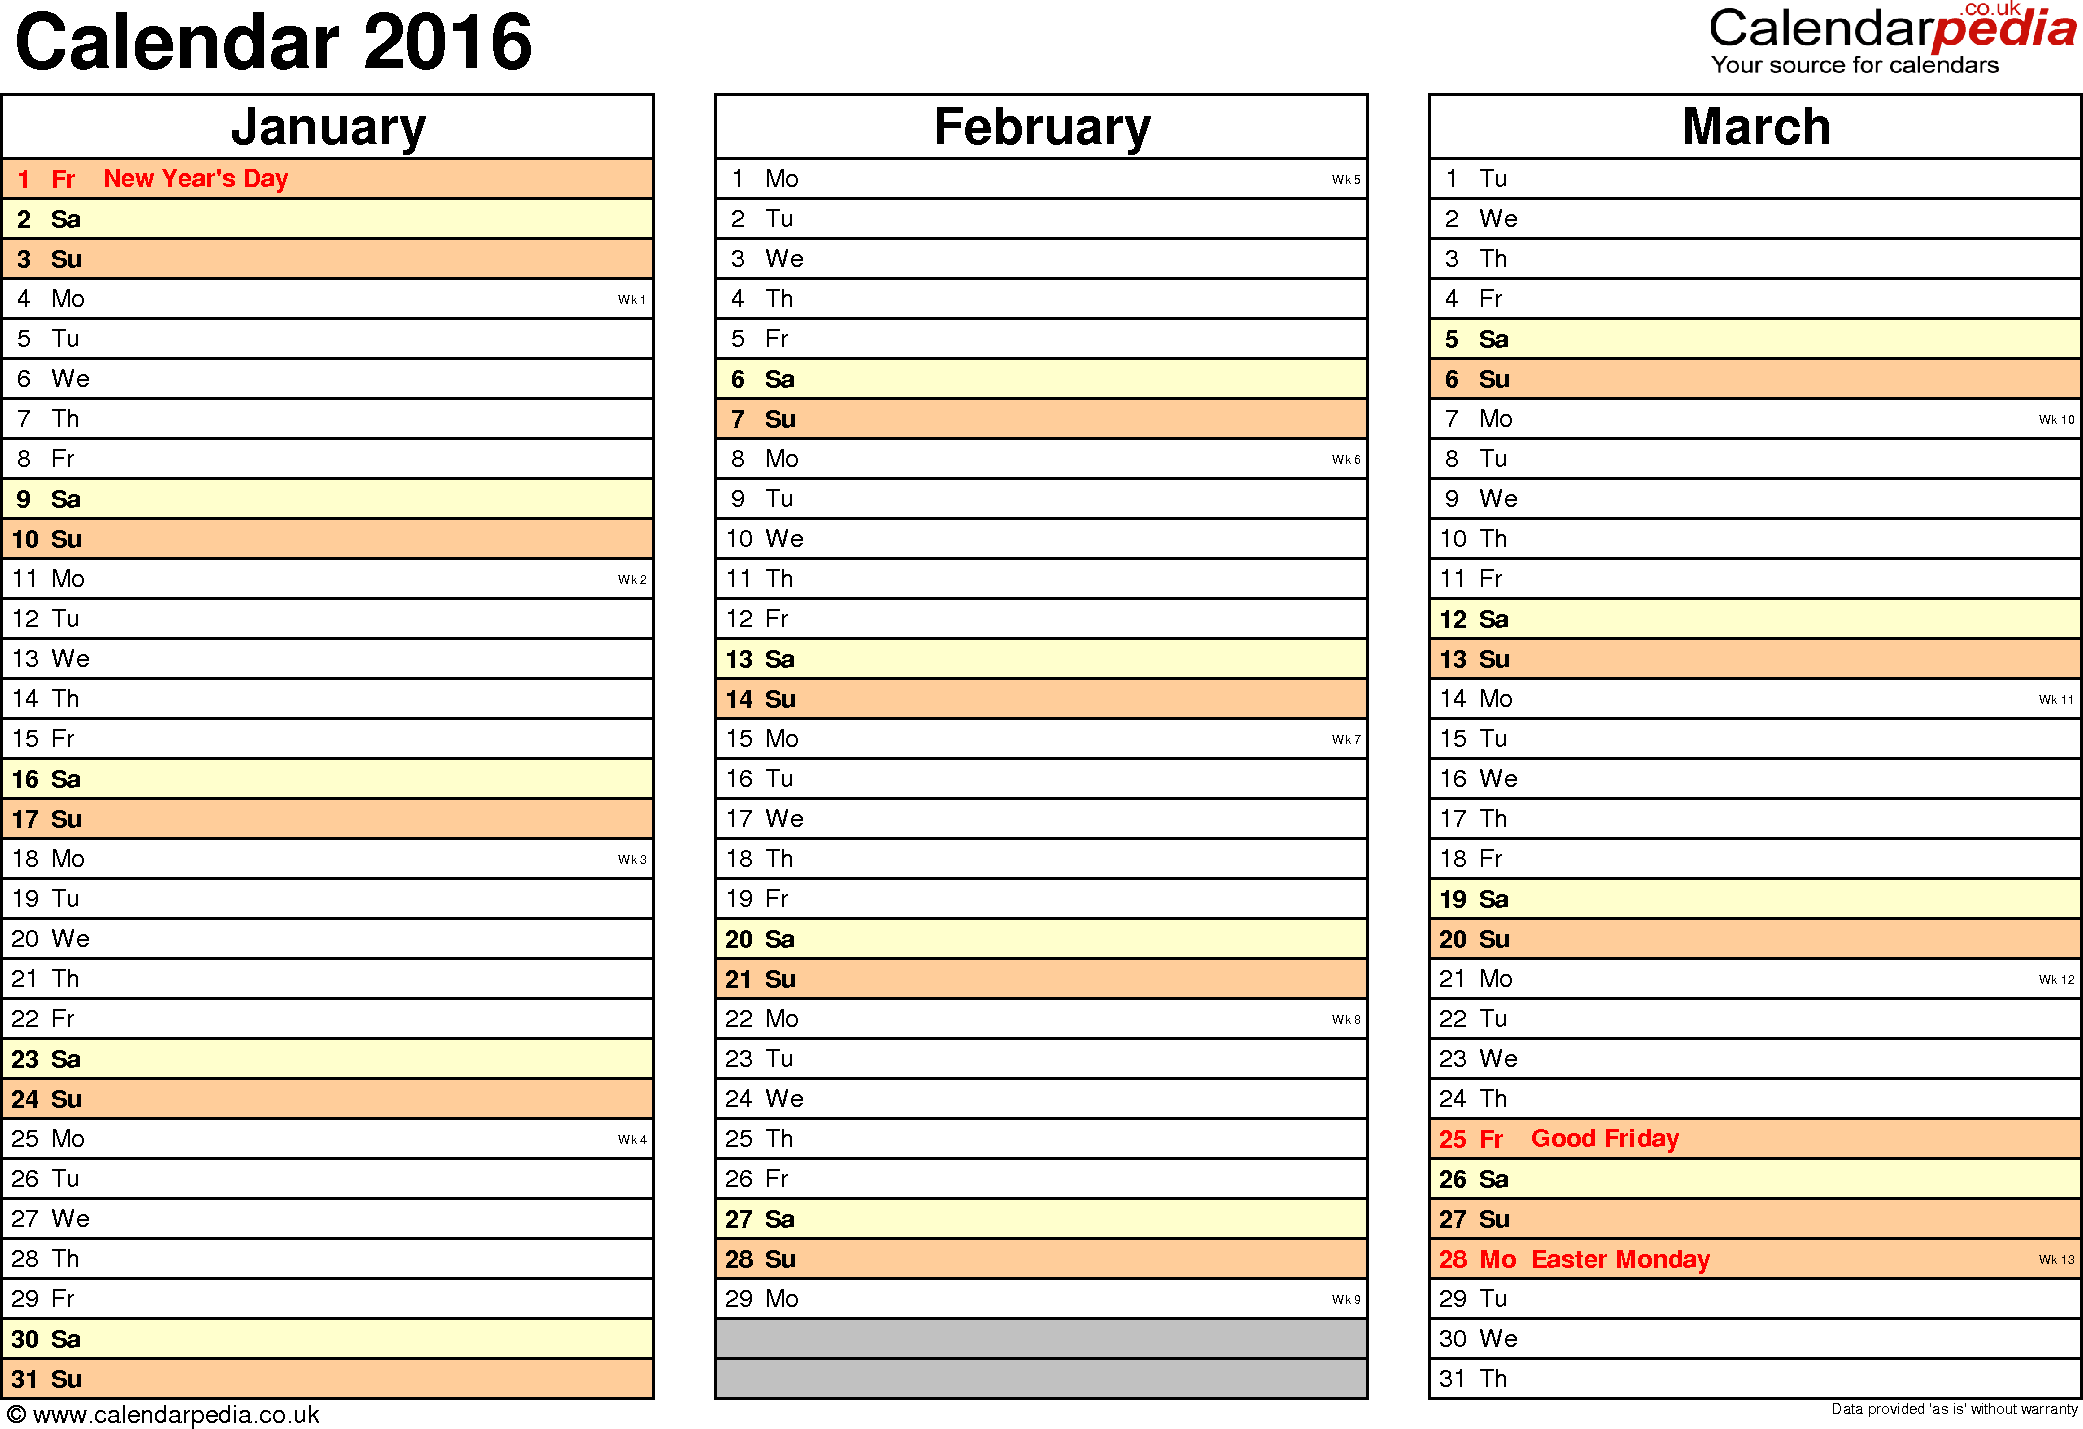 Template 5: Yearly calendar 2016 as PDF template, landscape orientation, 4 pages, months horizontally, days vertically, with UK bank holidays and week numbers